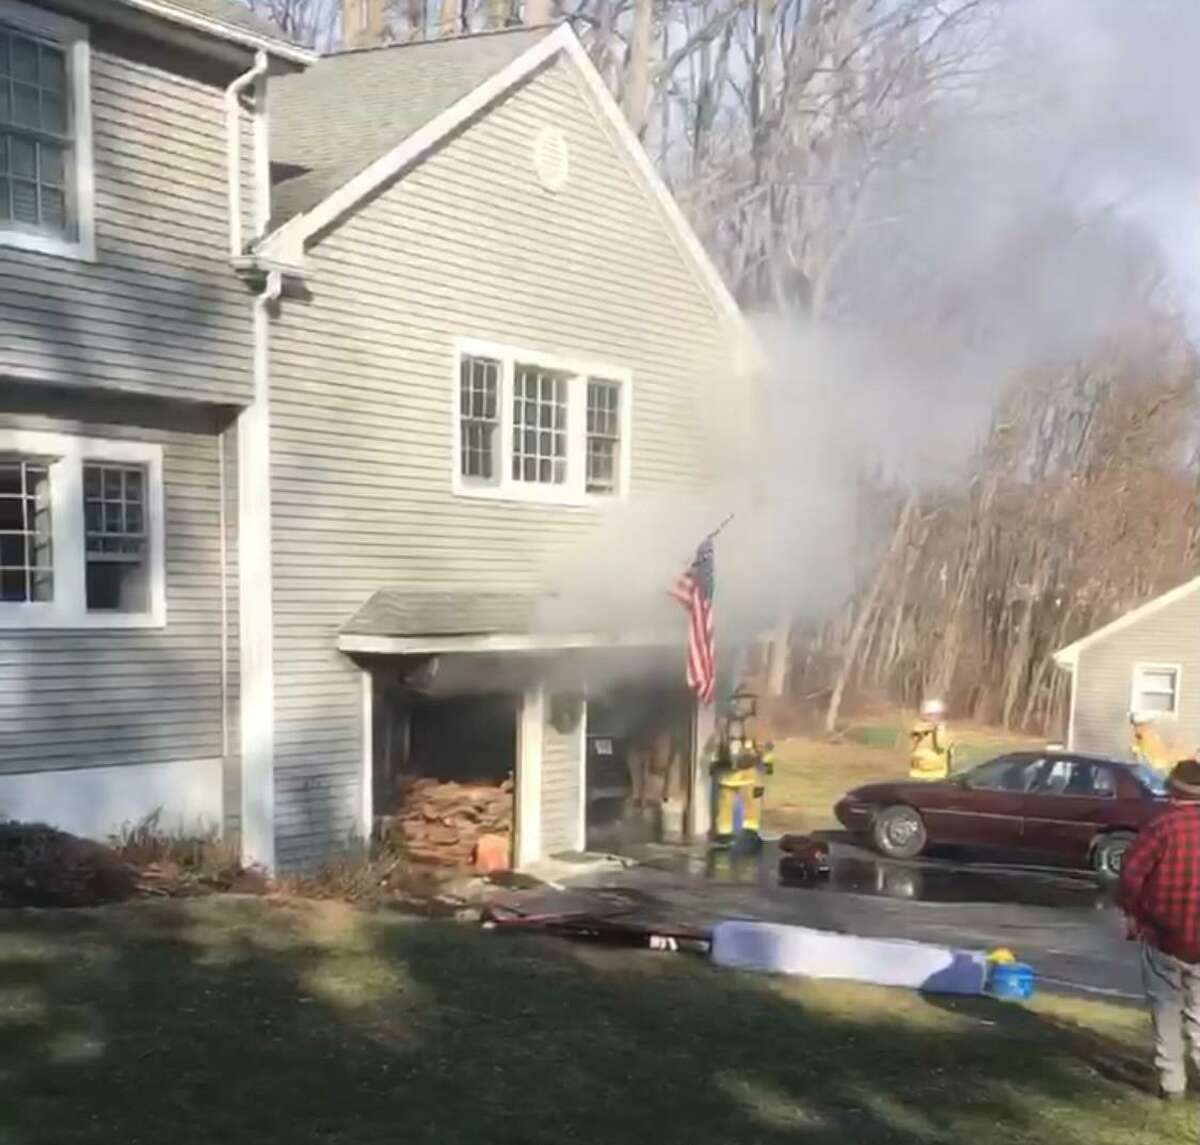 Firefighters quickly doused a garage fire Saturday, saving the main portion of the home at Capital Drive.